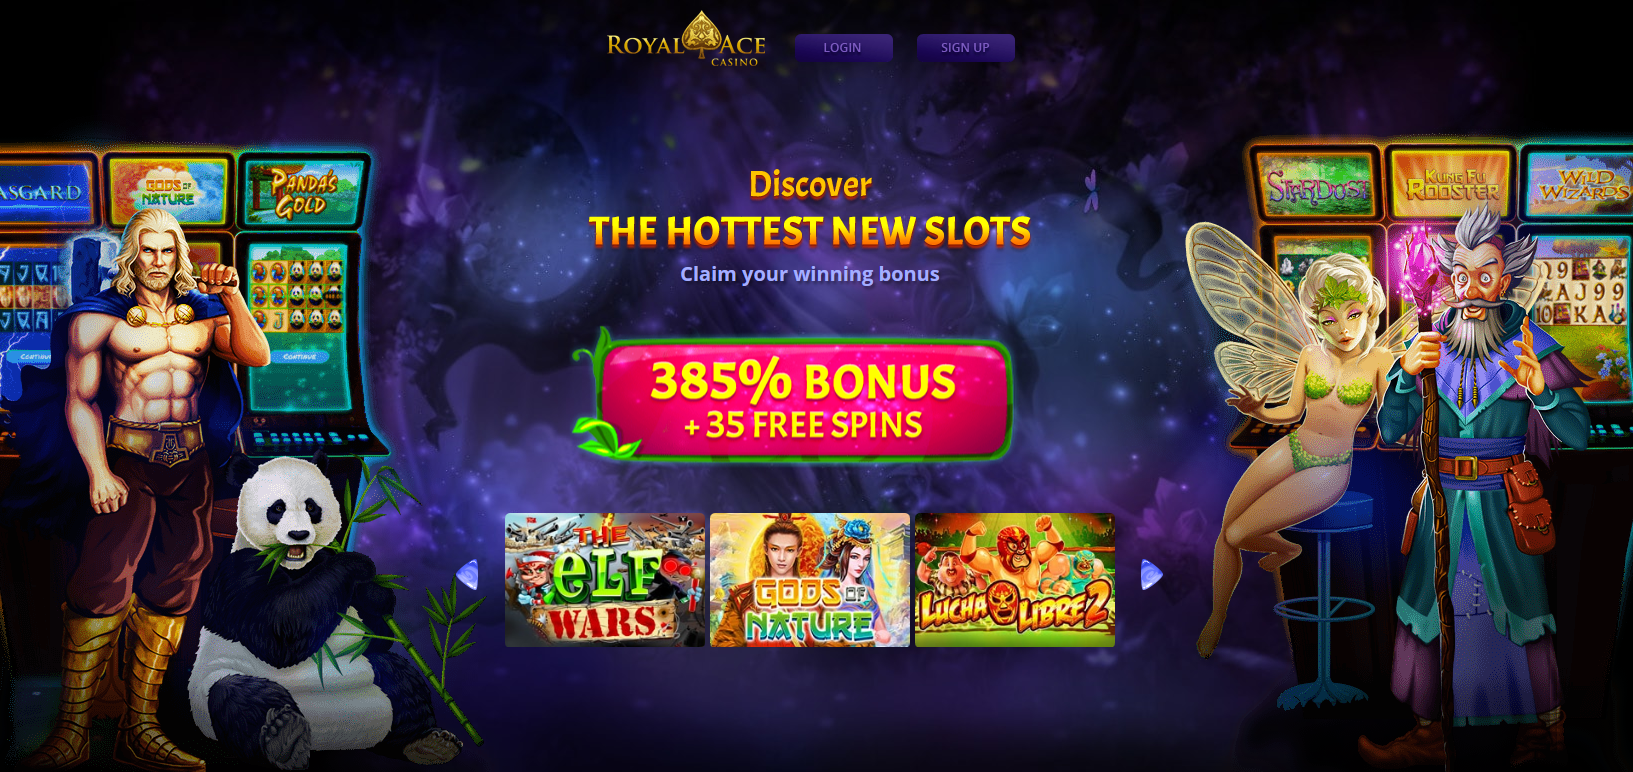 Royal Ace Casino - Big wins are waiting